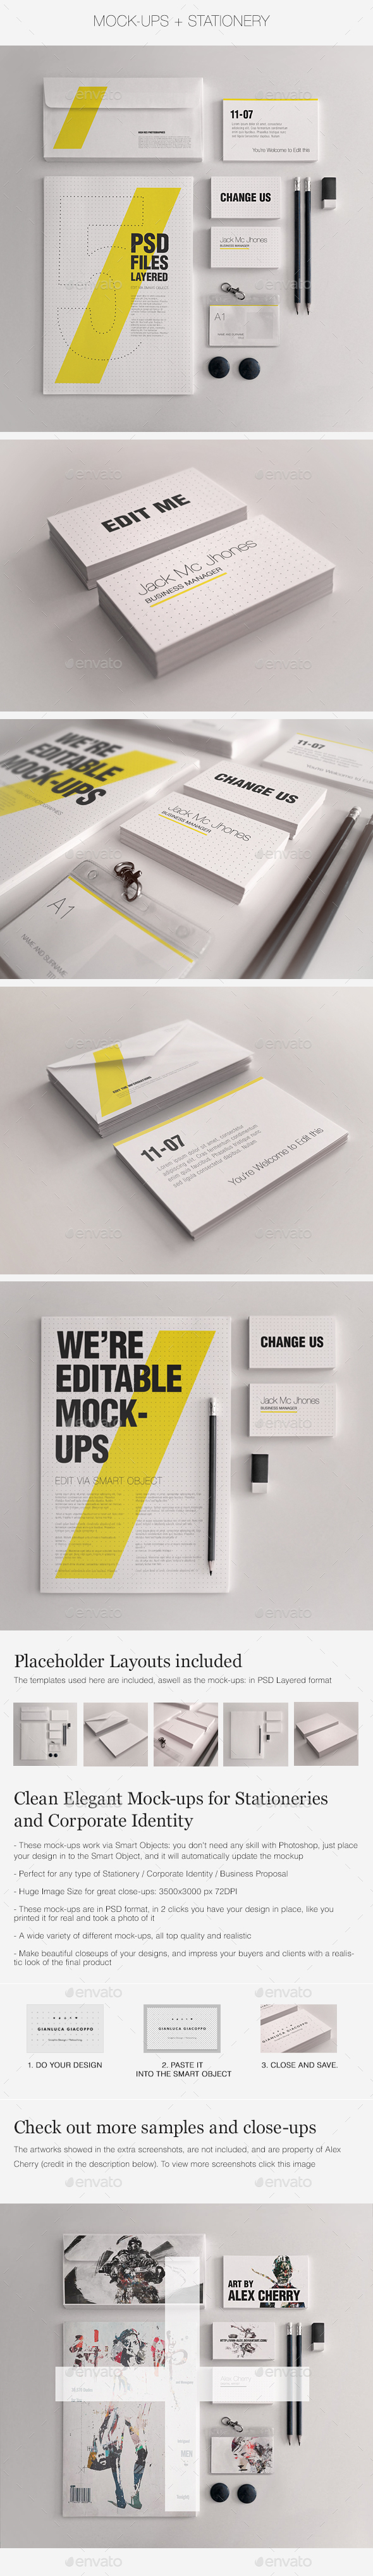 Realistic Stationery Mock-Up Set 1 - Corporate ID - Stationery Print